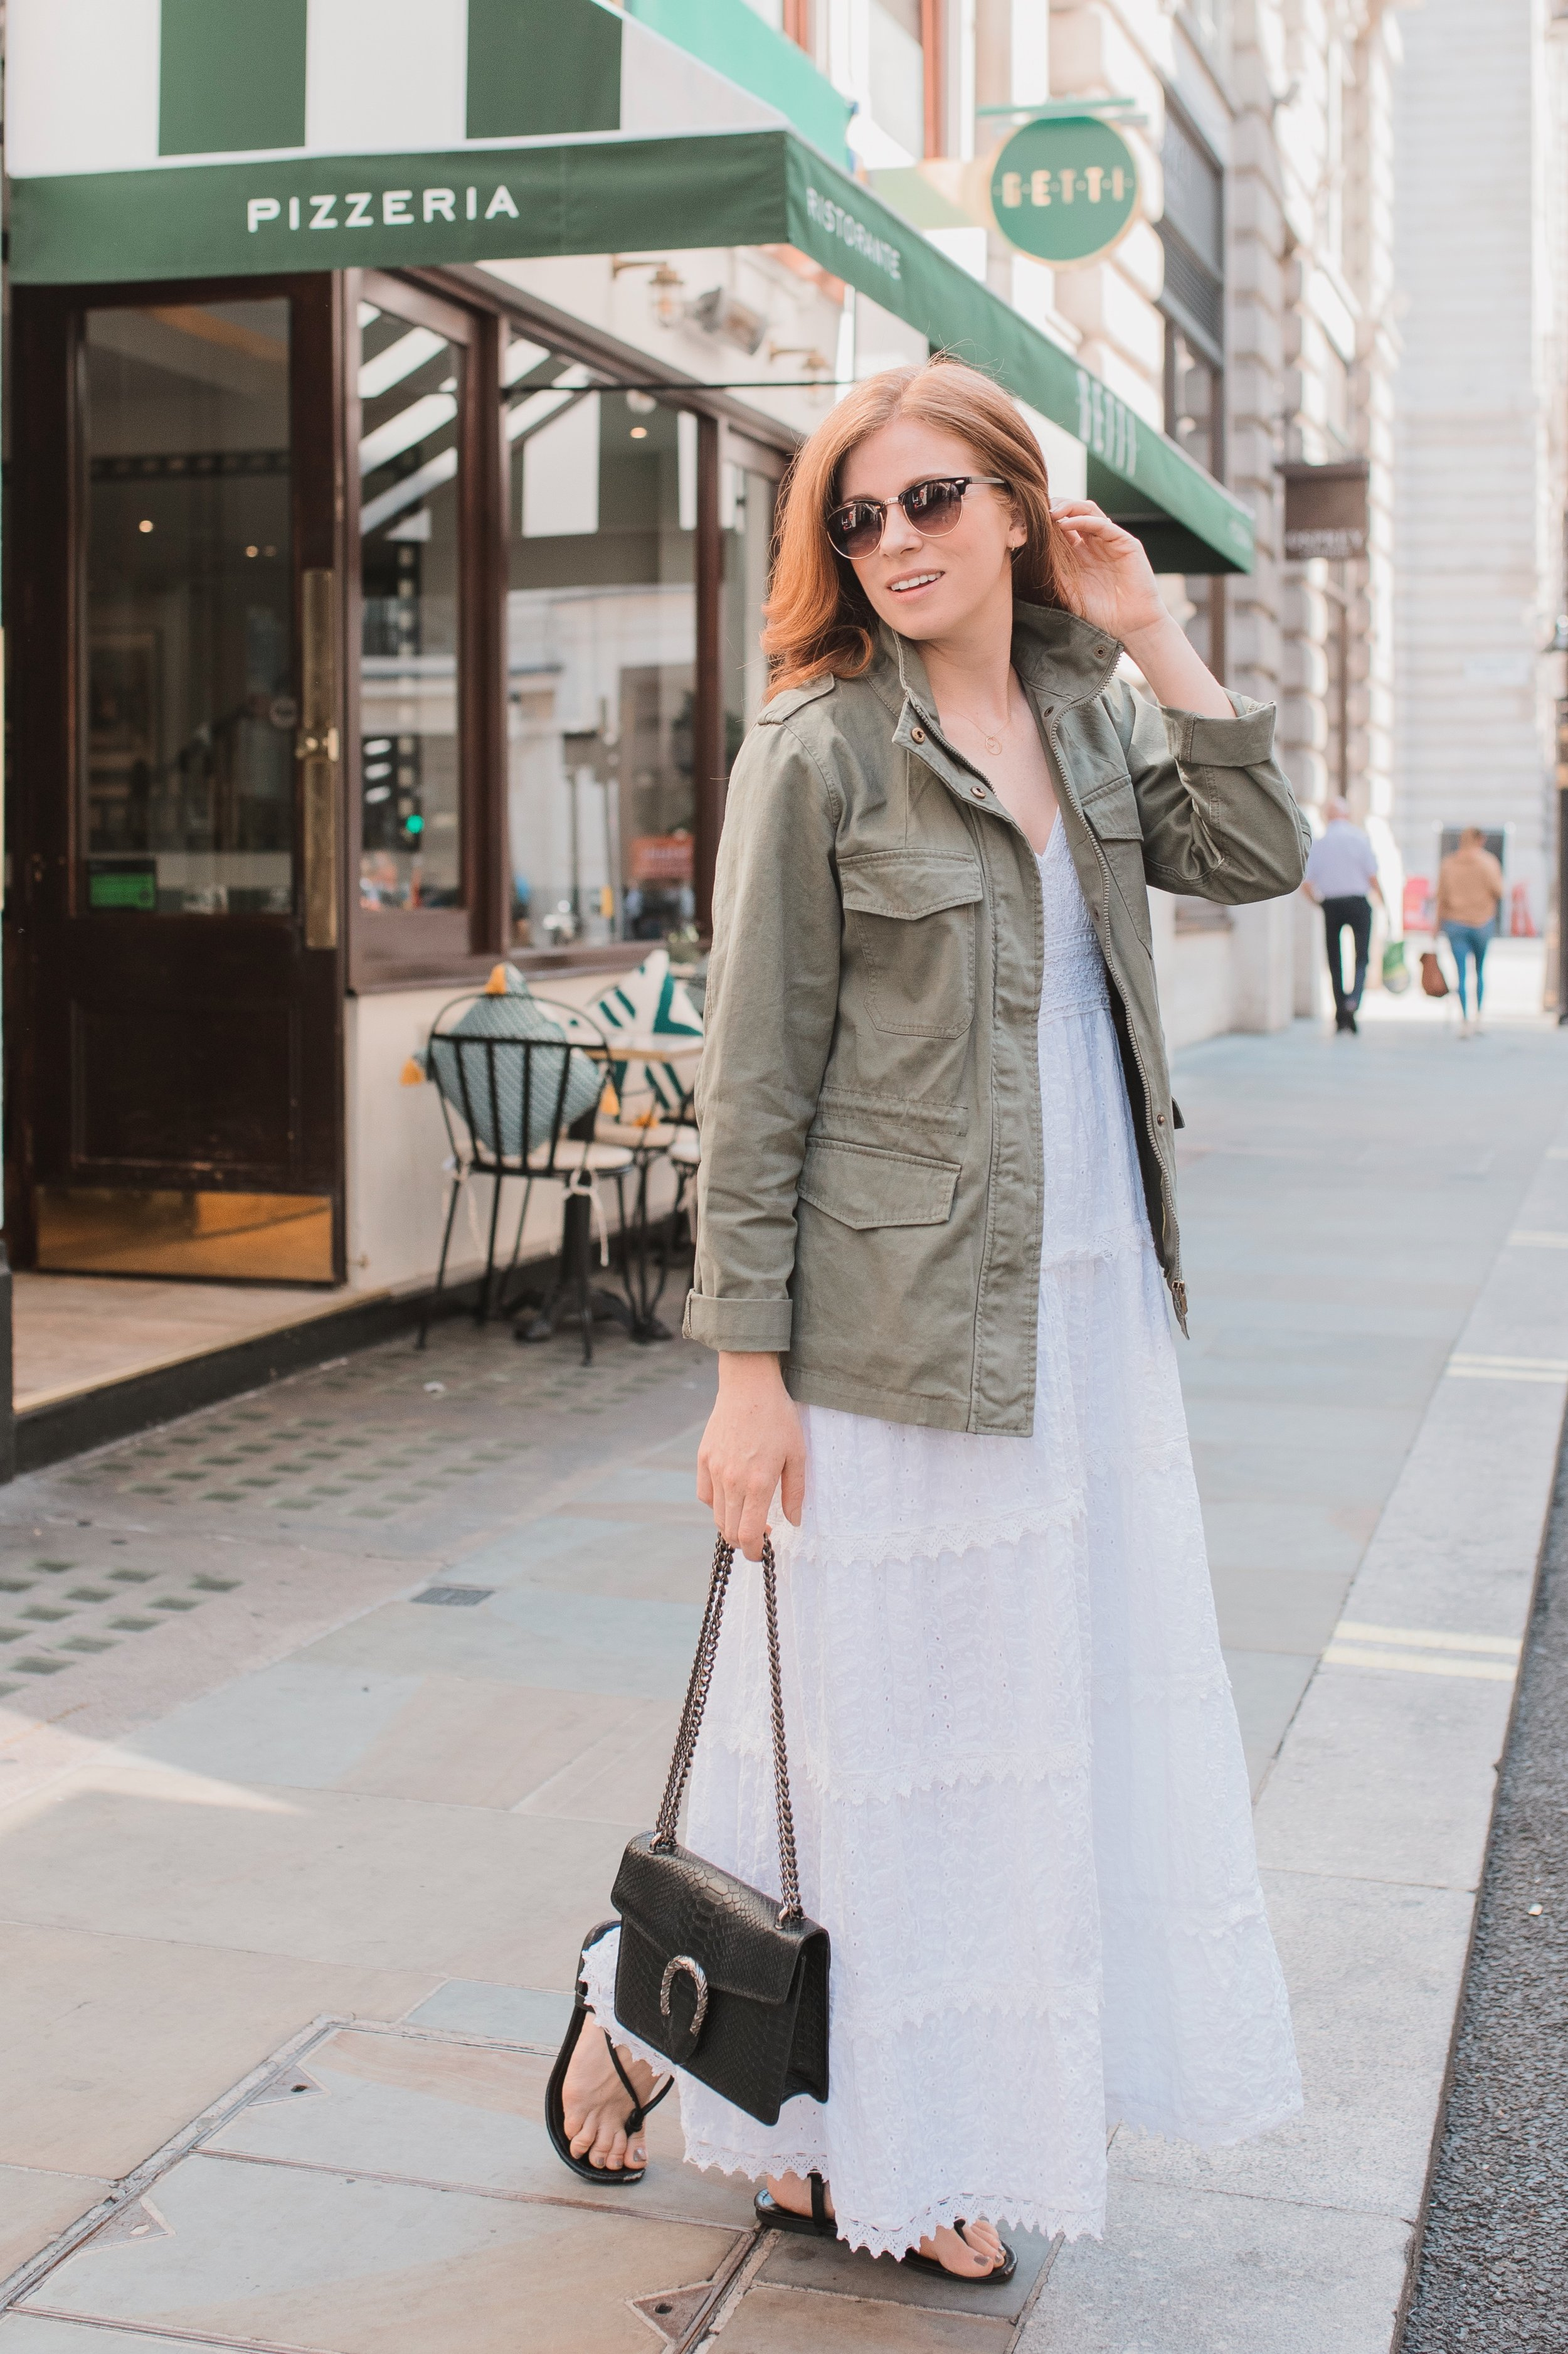 - A floaty maxi will be much cooler than a tight vest top and shorts.A lightweight jacket is essential for this ever changing weather - you never know when a sudden shower might take you by surprise.